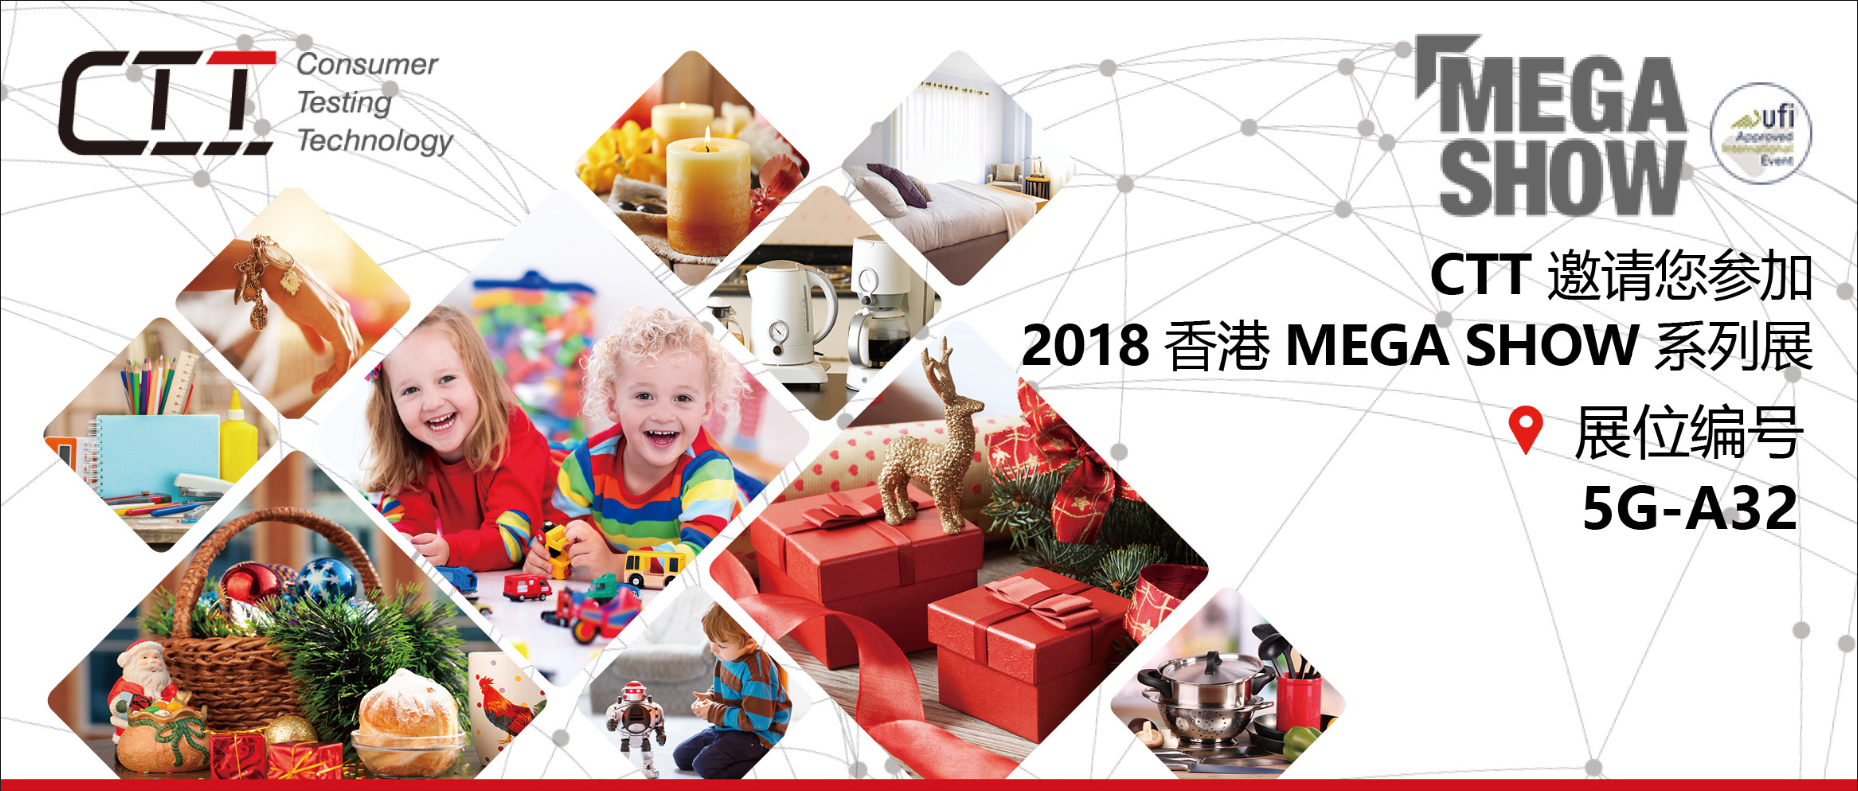 CTT invite you to The 2018 HongKong MEGA SHOW (Booth NO : 5G-A32)